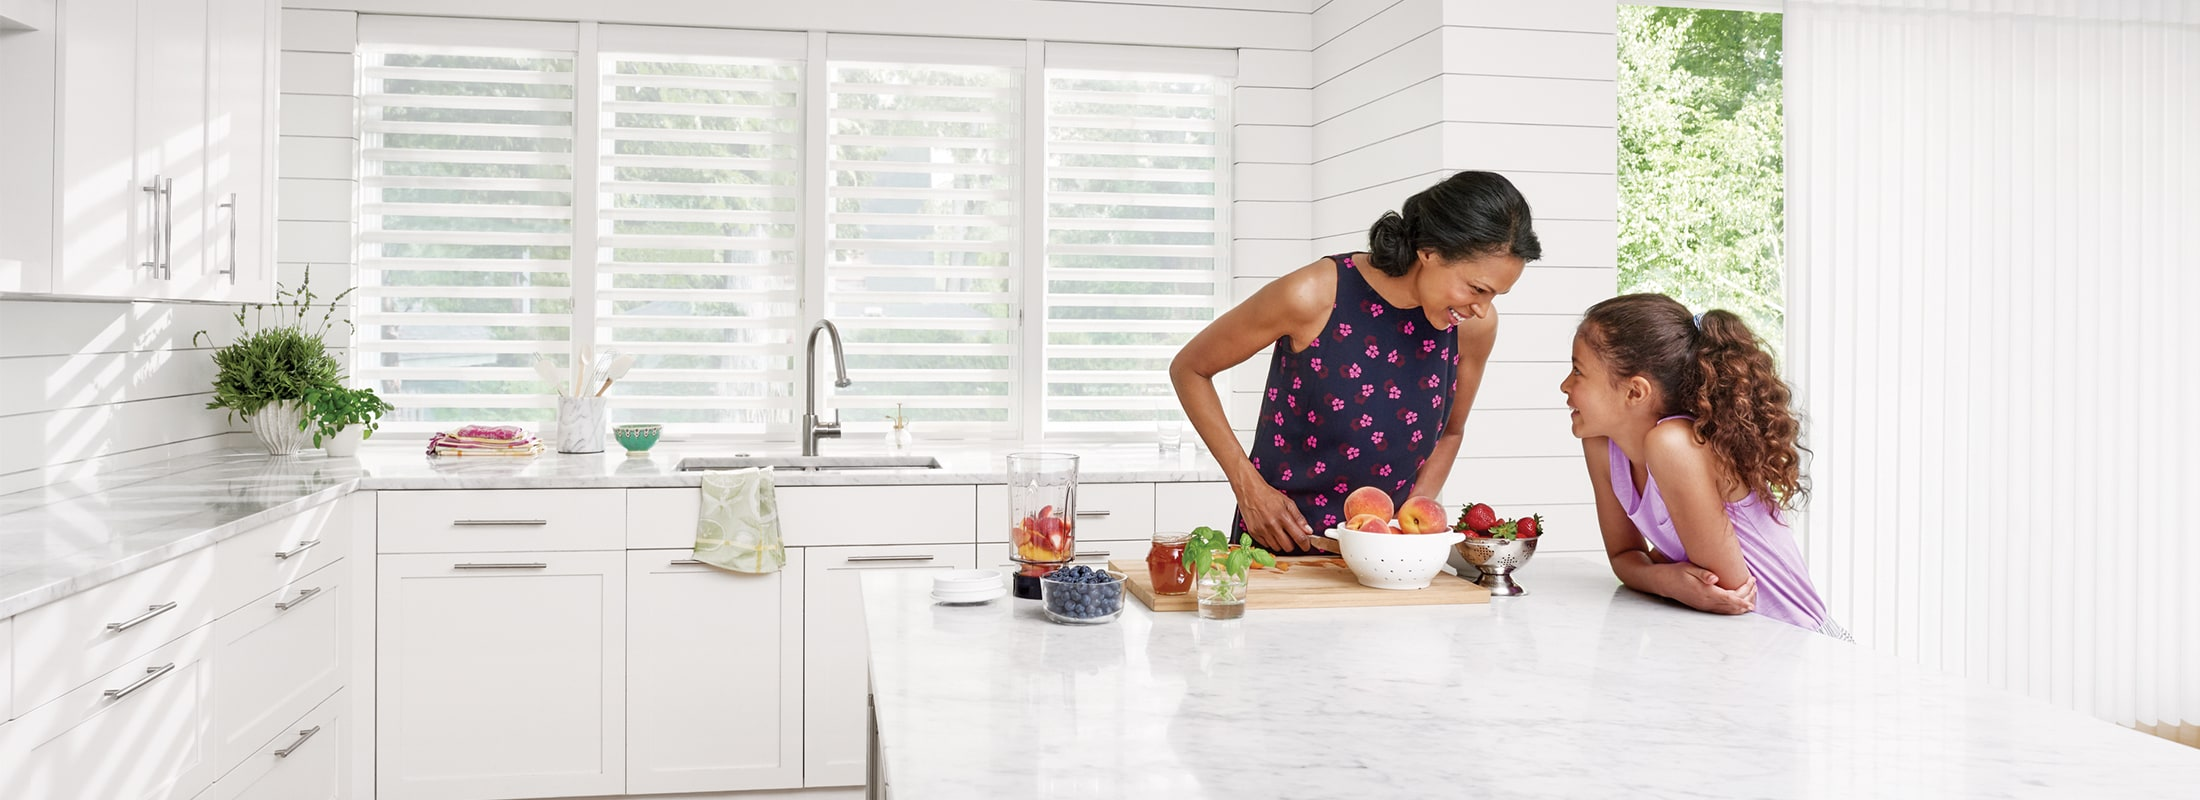 Pirouette® Window Shadings are clean-looking & designed WITH BEAUTIFUL LIGHT CONTROL